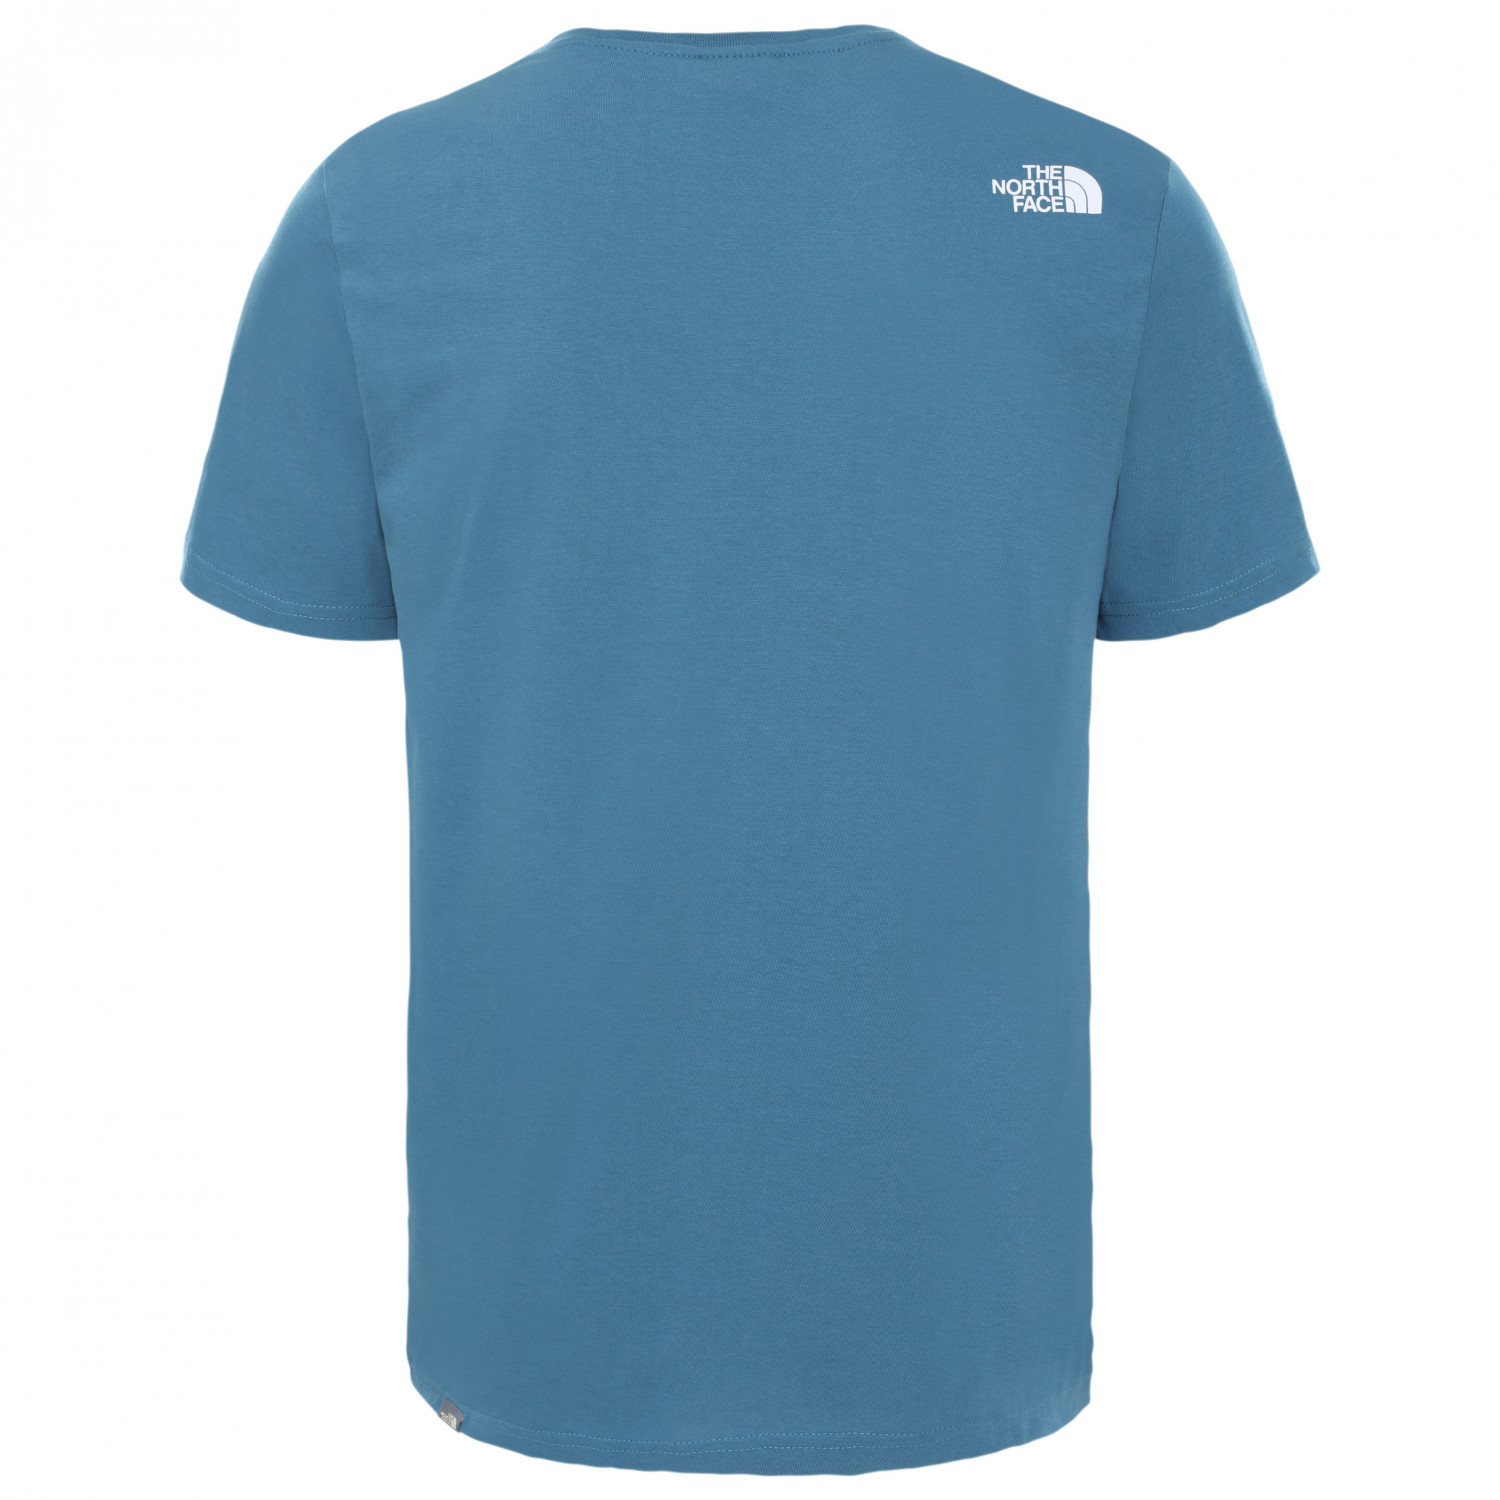 b537826bf The North Face S/S Simple Dome Tee - T-Shirt Men's | Buy online ...